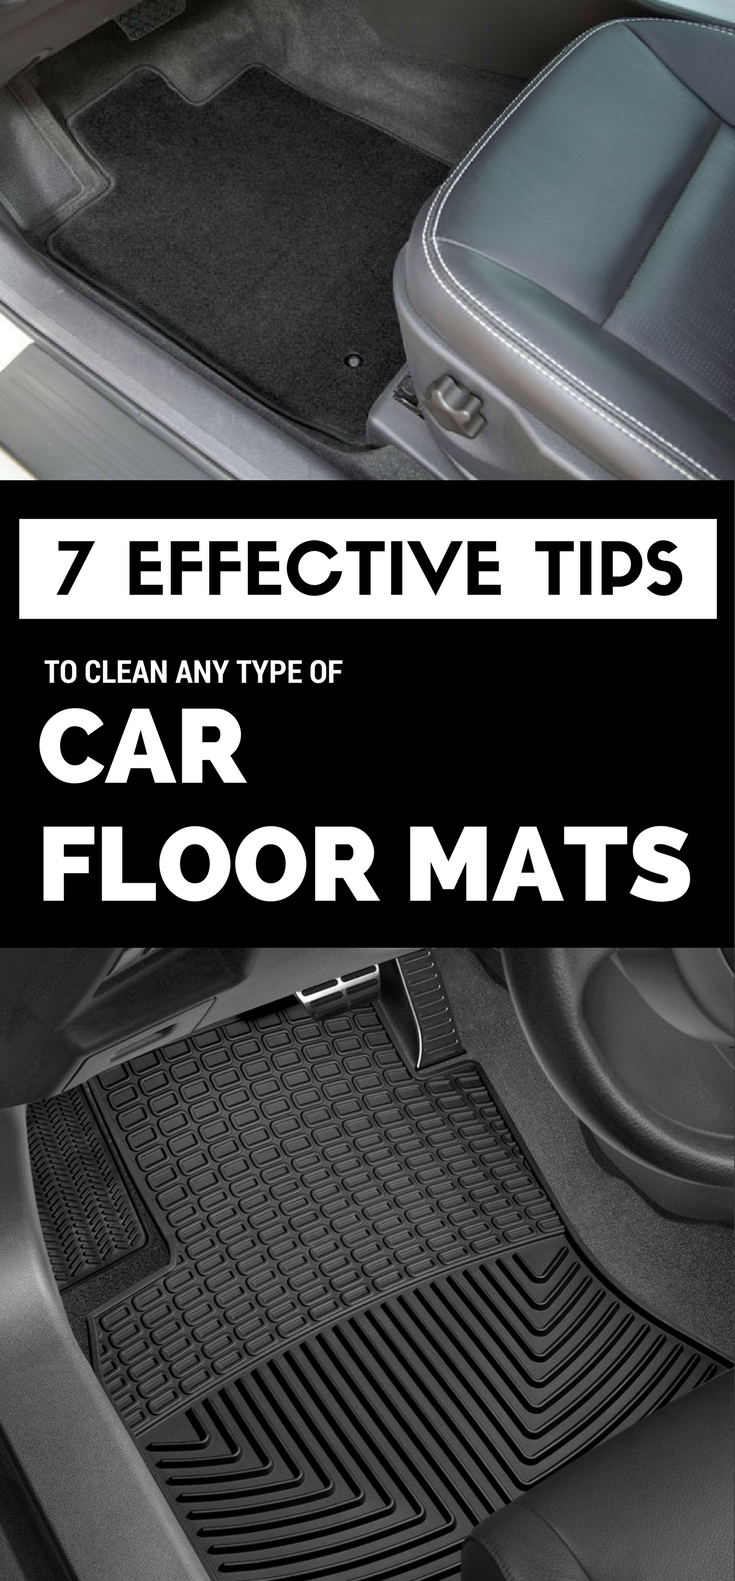 7 Effective Tips To Clean Any Type Of Car Floor Mats In 2020 Car Floor Mats Method Cleaning Products Floor Cleaning Hacks